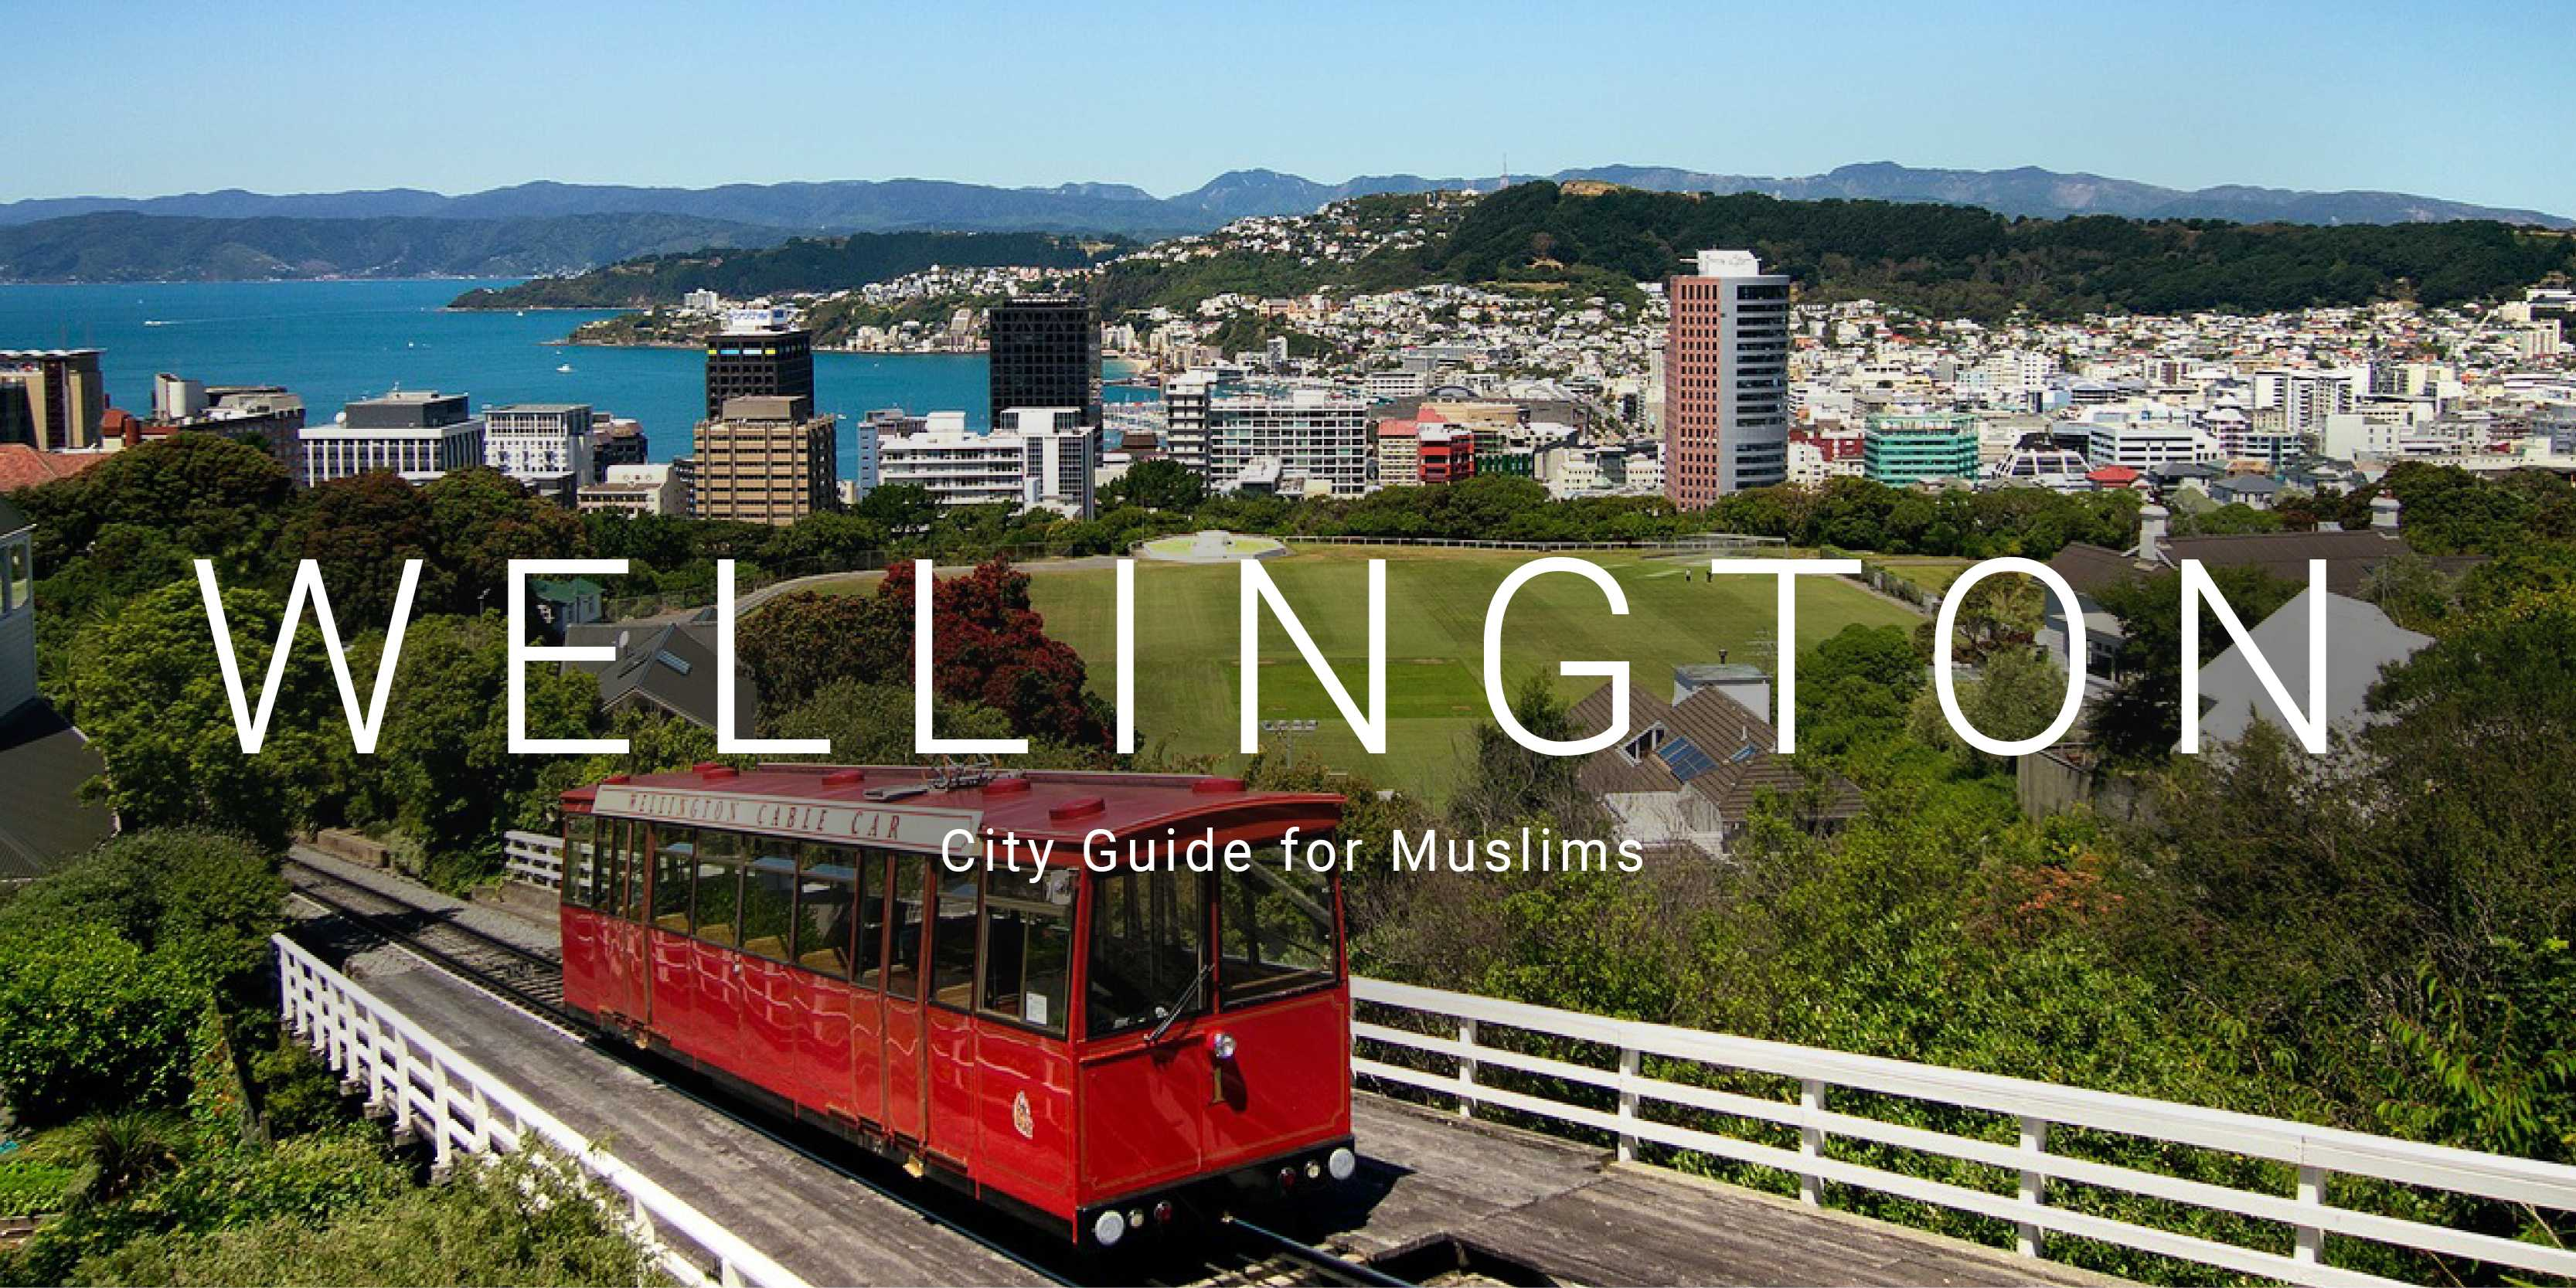 Top Destinations For Muslims In To Travel For Holidays - Kid friendly new zealand 6 things to see and do